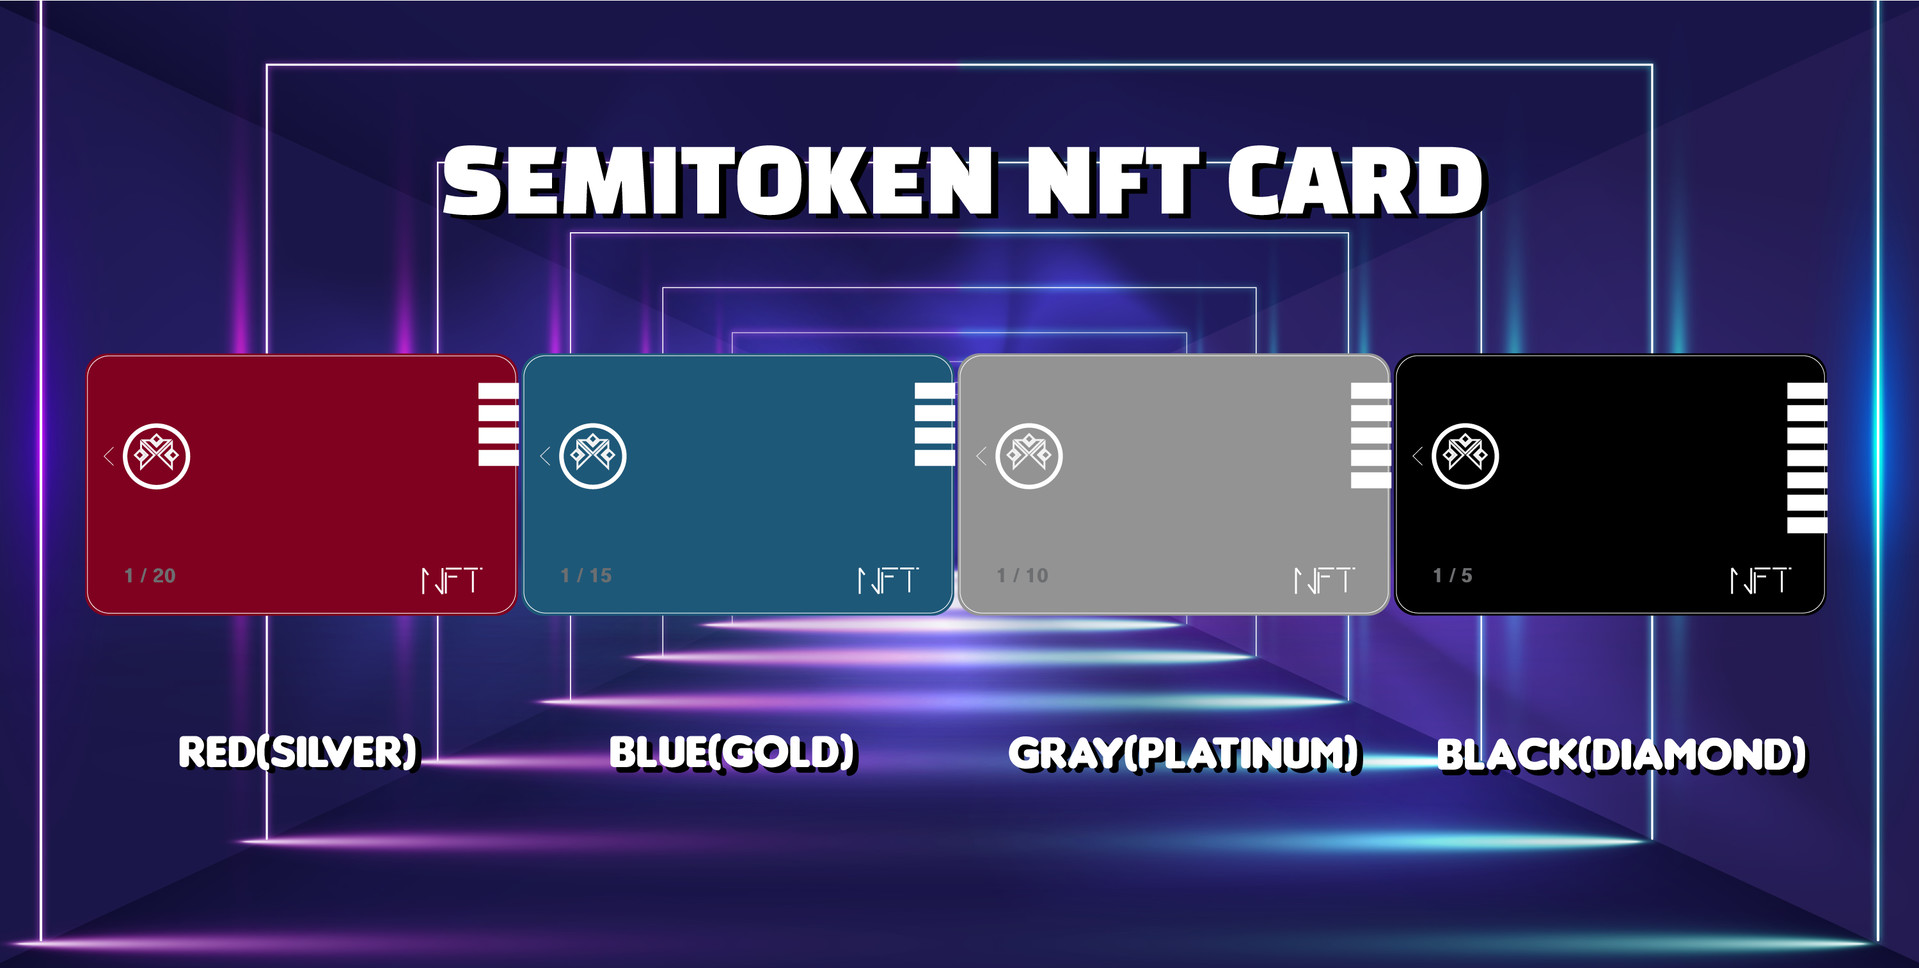 Semi-card can be deposited and guaranteed as a mortgage advancement card on a semi-token loan platform, which can replace BTC.  The class of the card consists of silver, gold, platinum, and diamond grades, and the deposit limit is set for each class.